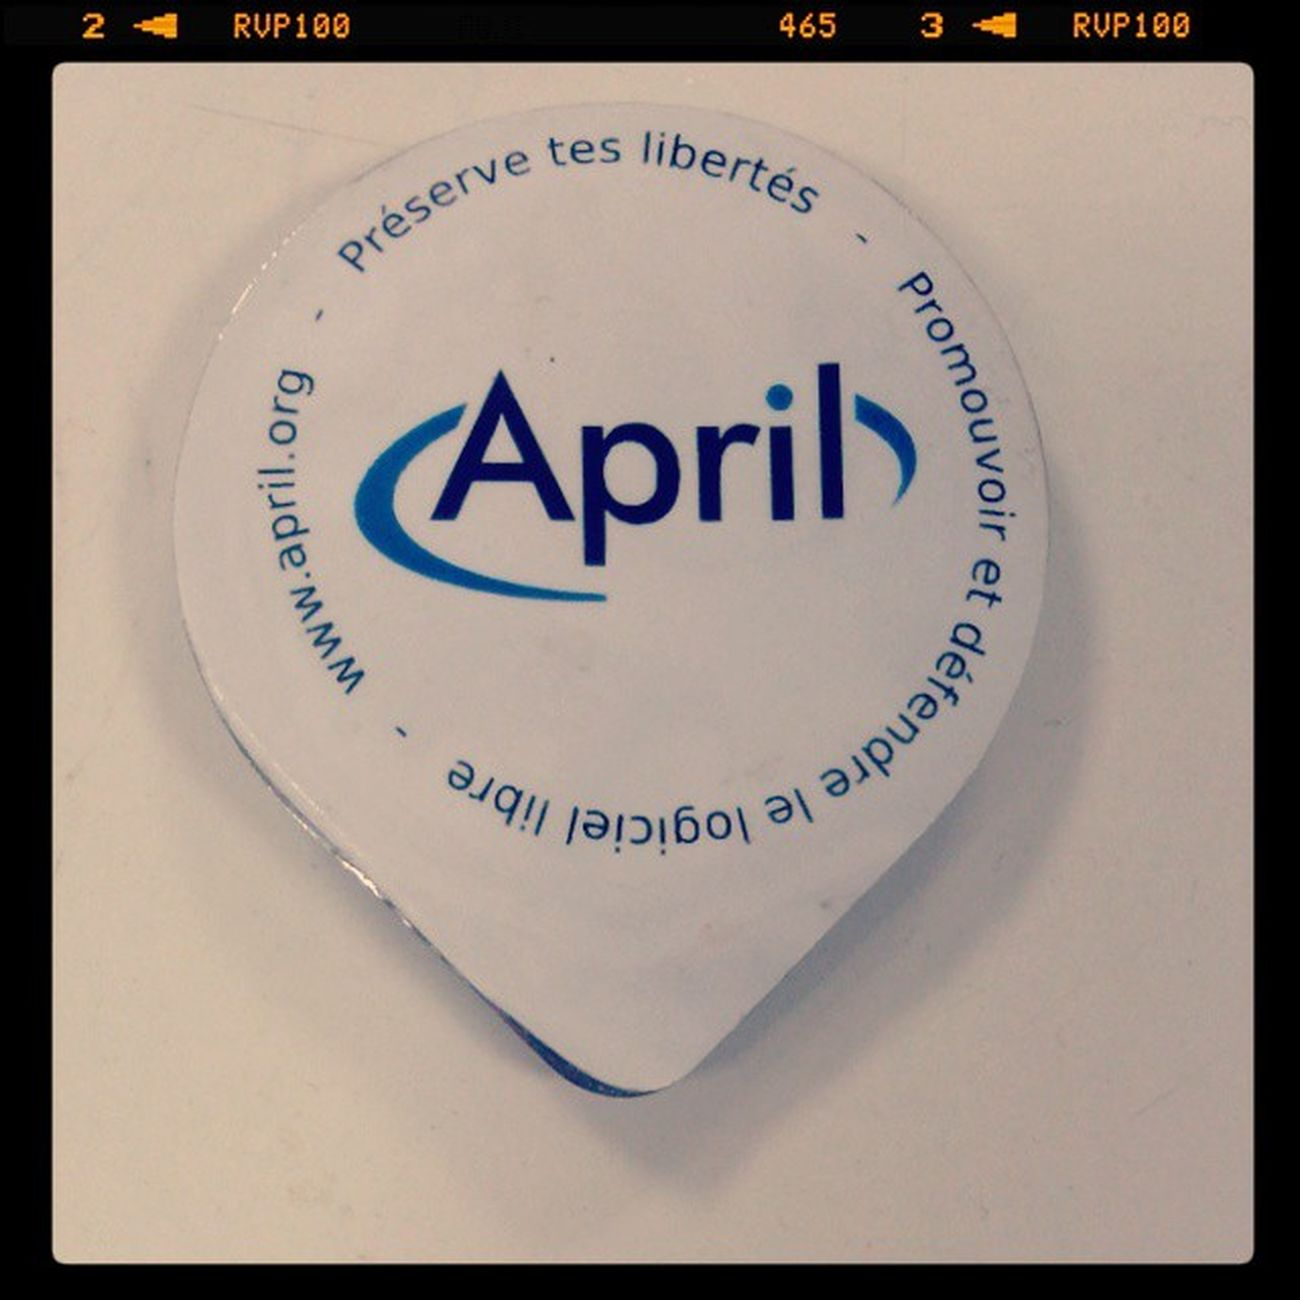 @Le_Loop after FHaP un préservatif April distribué par http://loops.fr BlackLoop Lulz